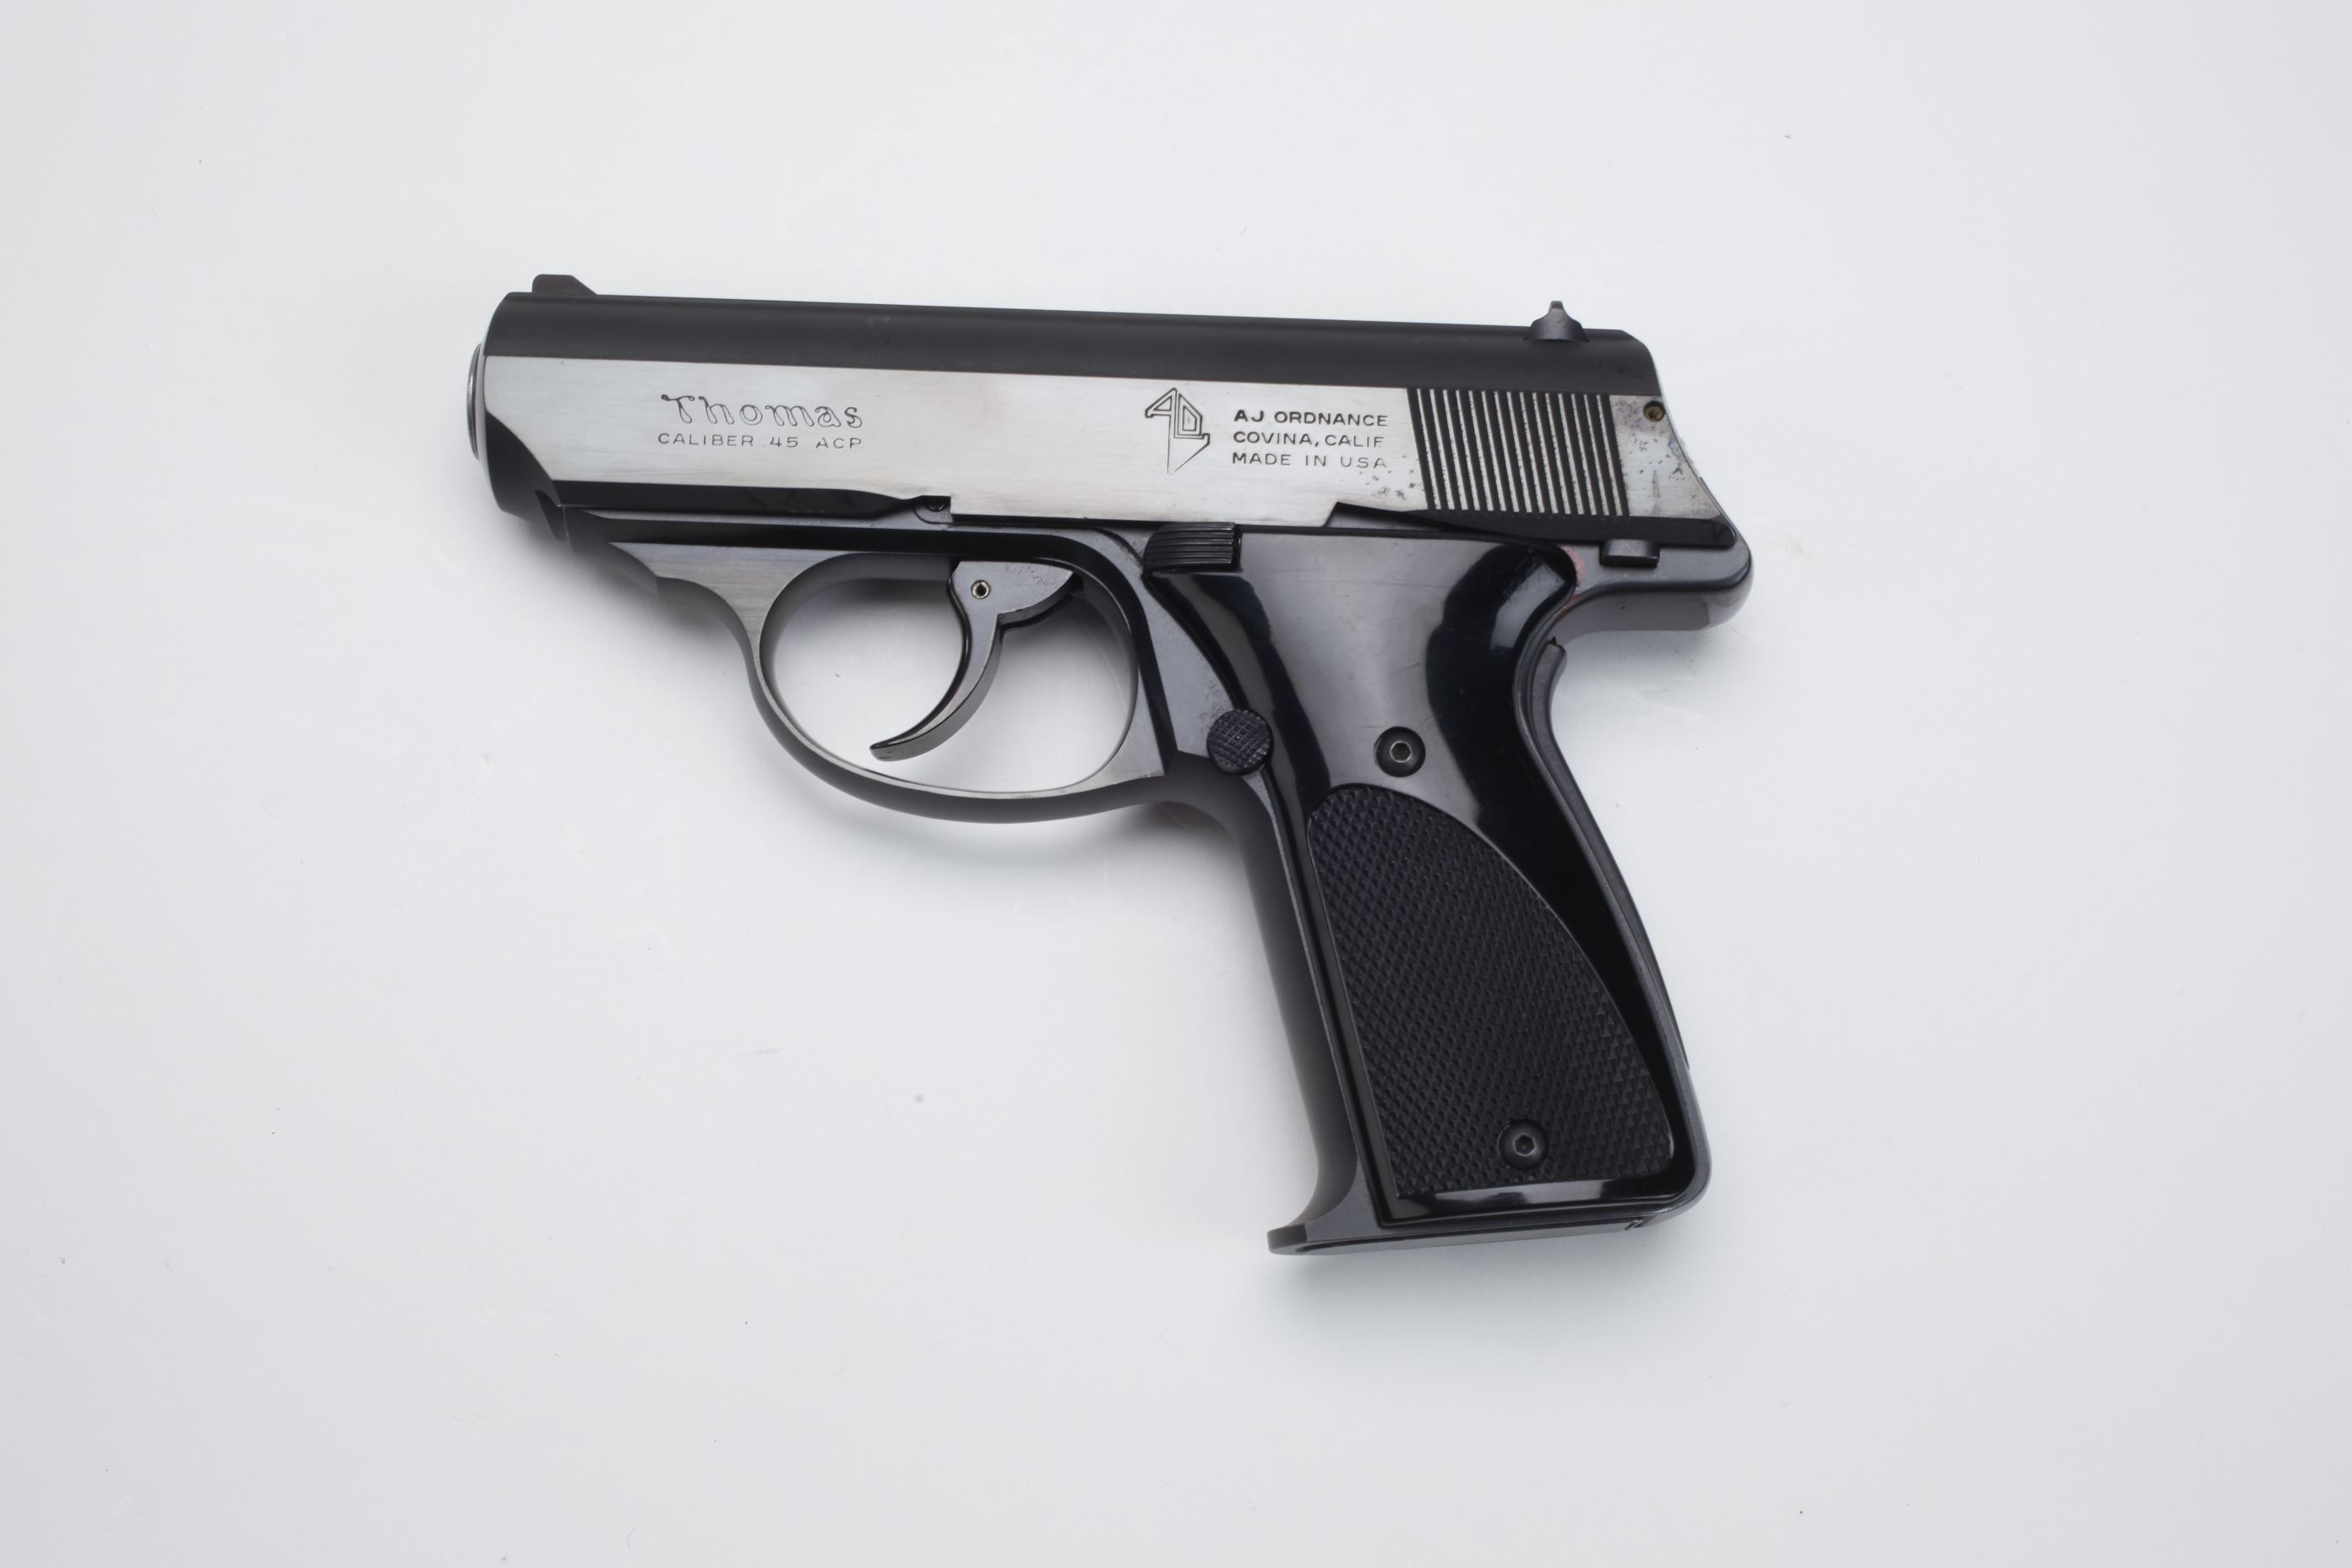 Thomas Semi-Automatic Pistol